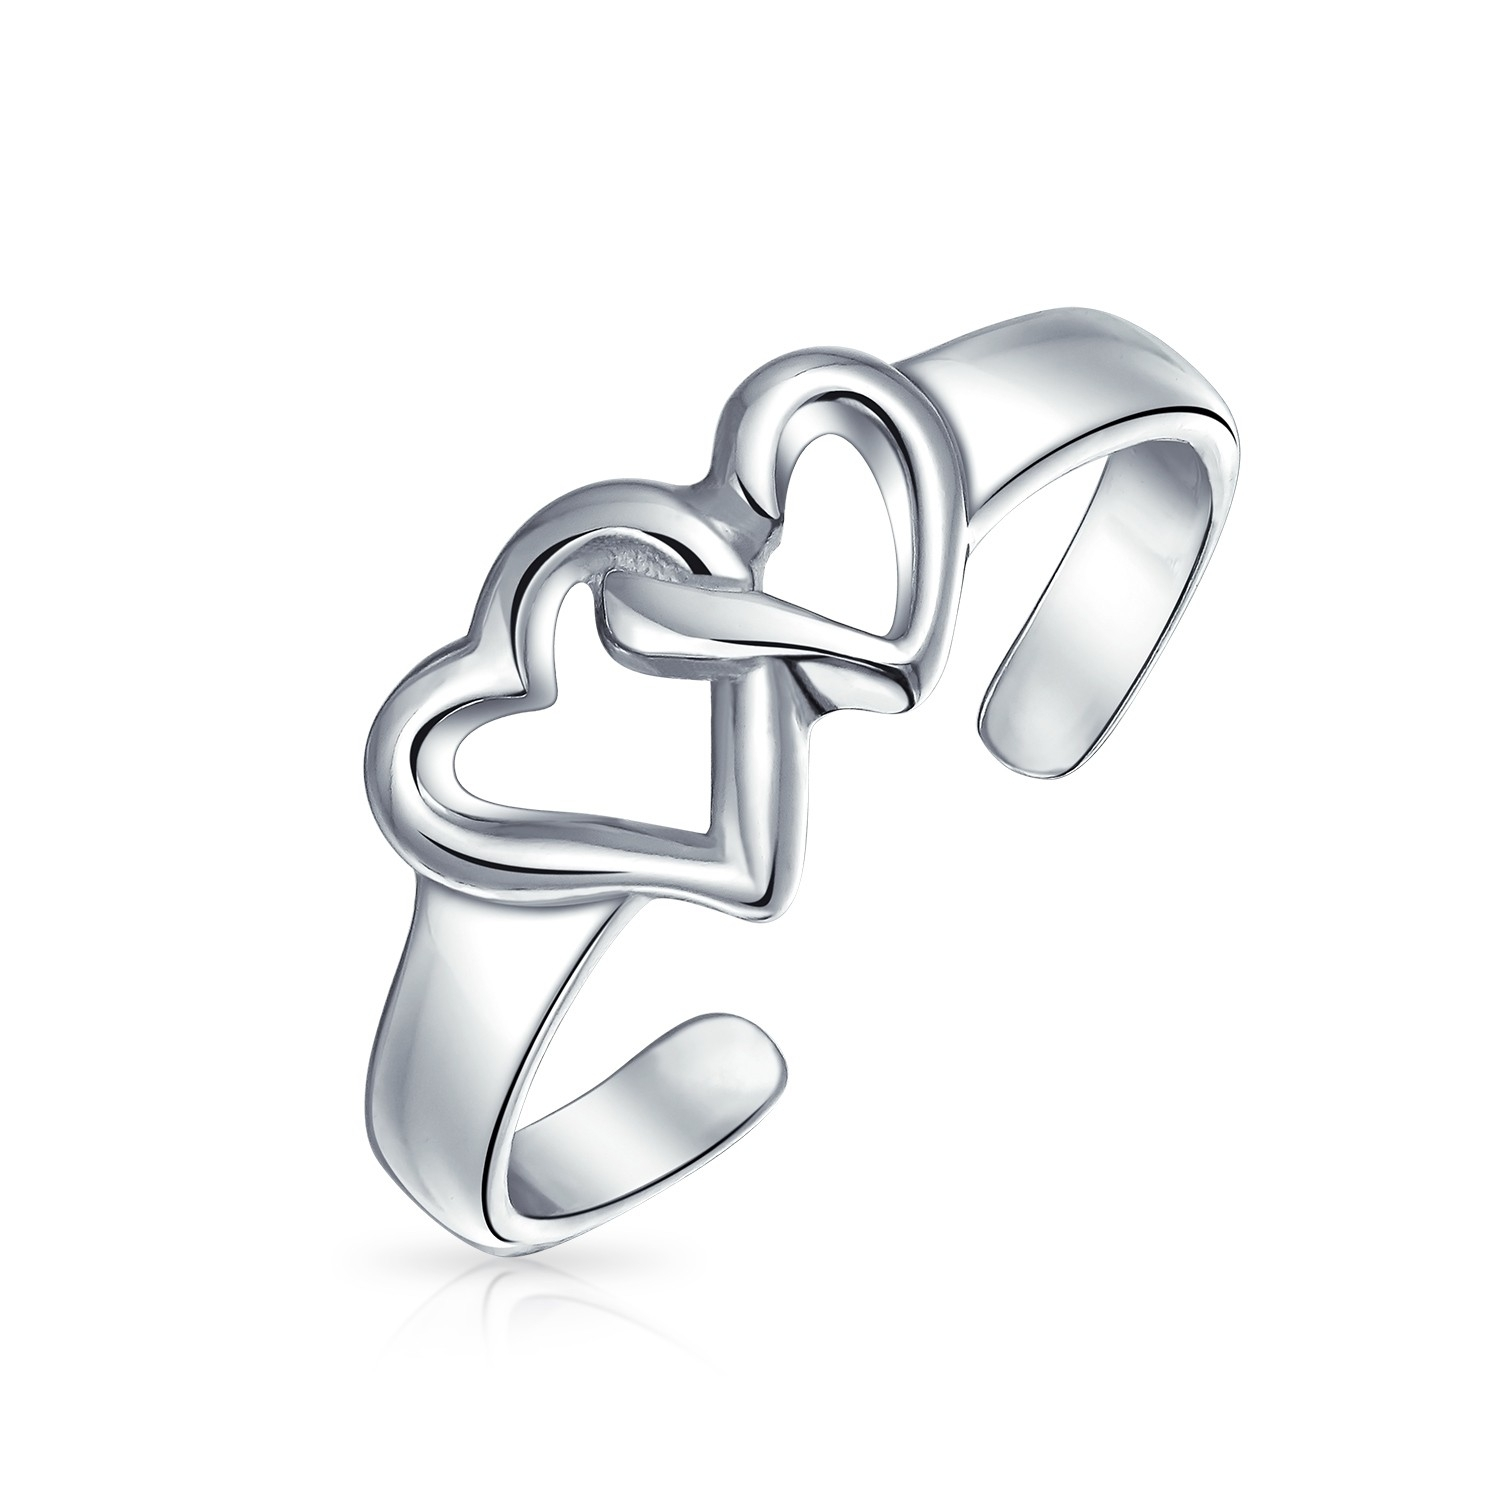 Adjustable Double Open Heart Midi Ring Sterling Silver Toe Rings Intended For Most Up To Date Platinum Toe Rings (View 1 of 15)